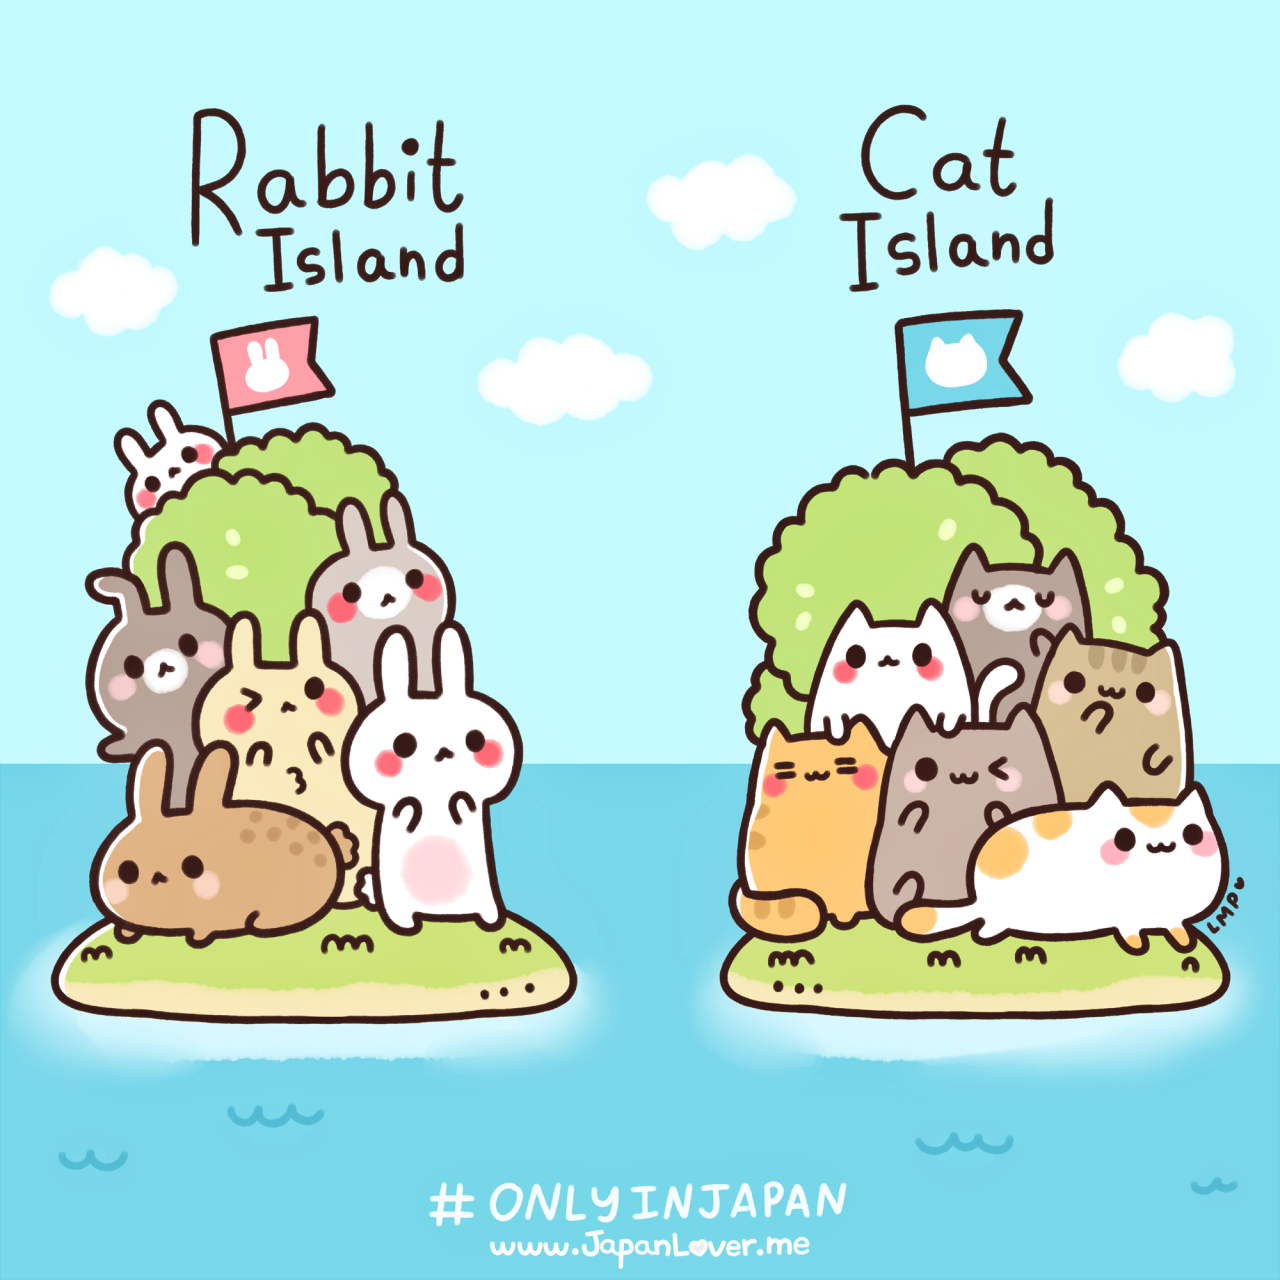 japanloverme:  Japan's rabbit island and cat island(s) are islands where hundreds of bunnies and cats (respectively) live freely~ with only very few people (residents/caretakers) who stay in the island to take